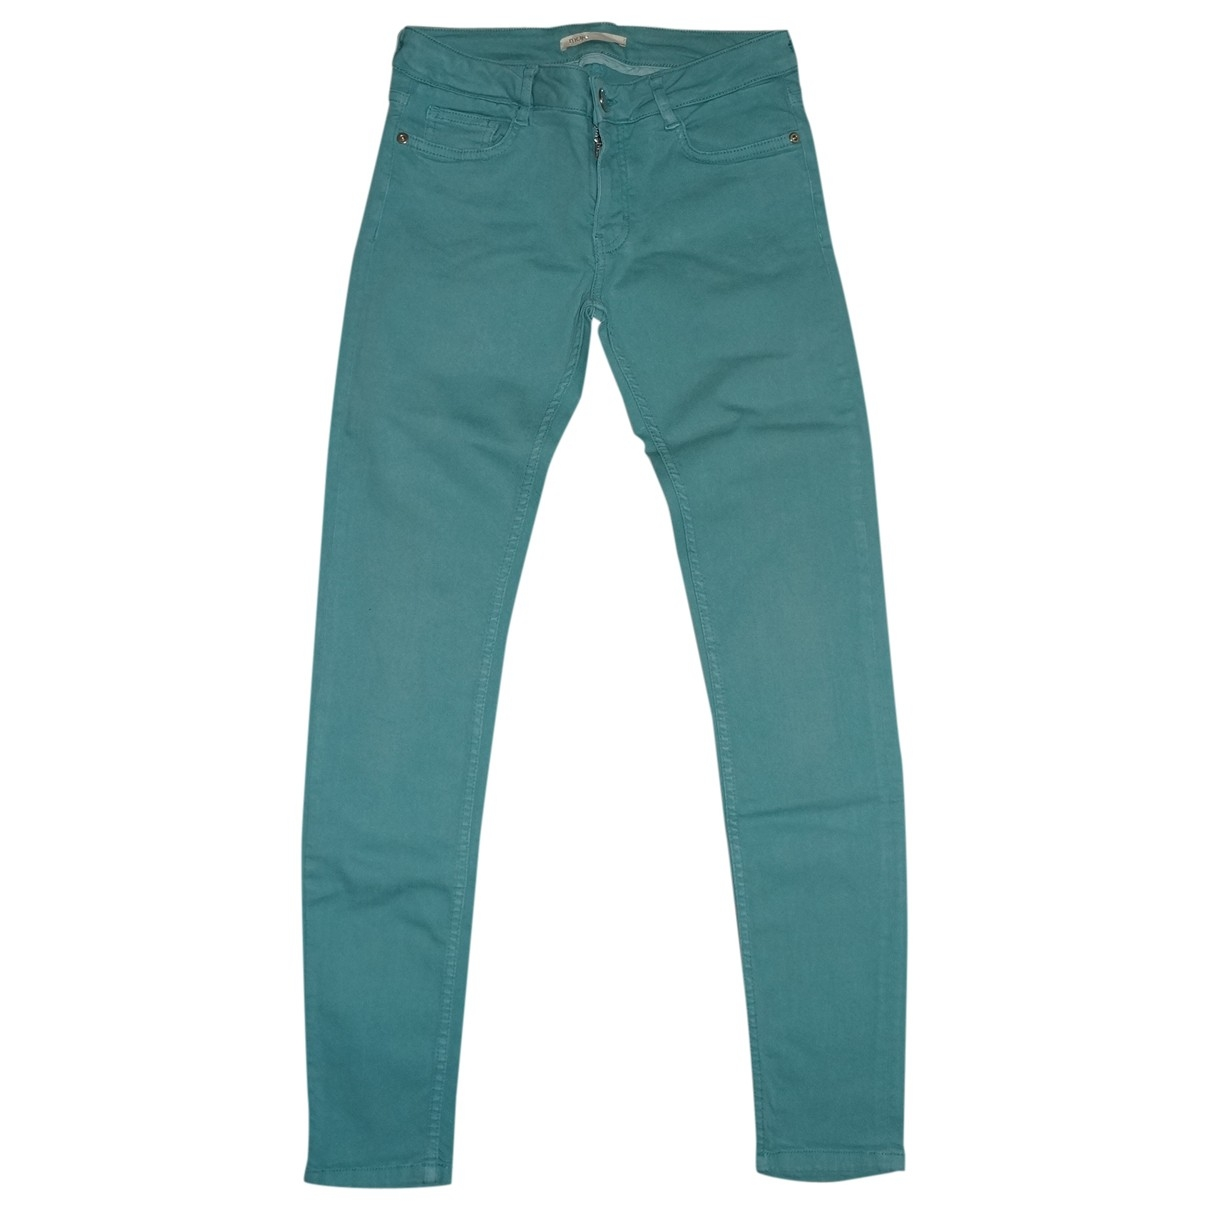 Maje \N Turquoise Cotton Jeans for Women 38 FR